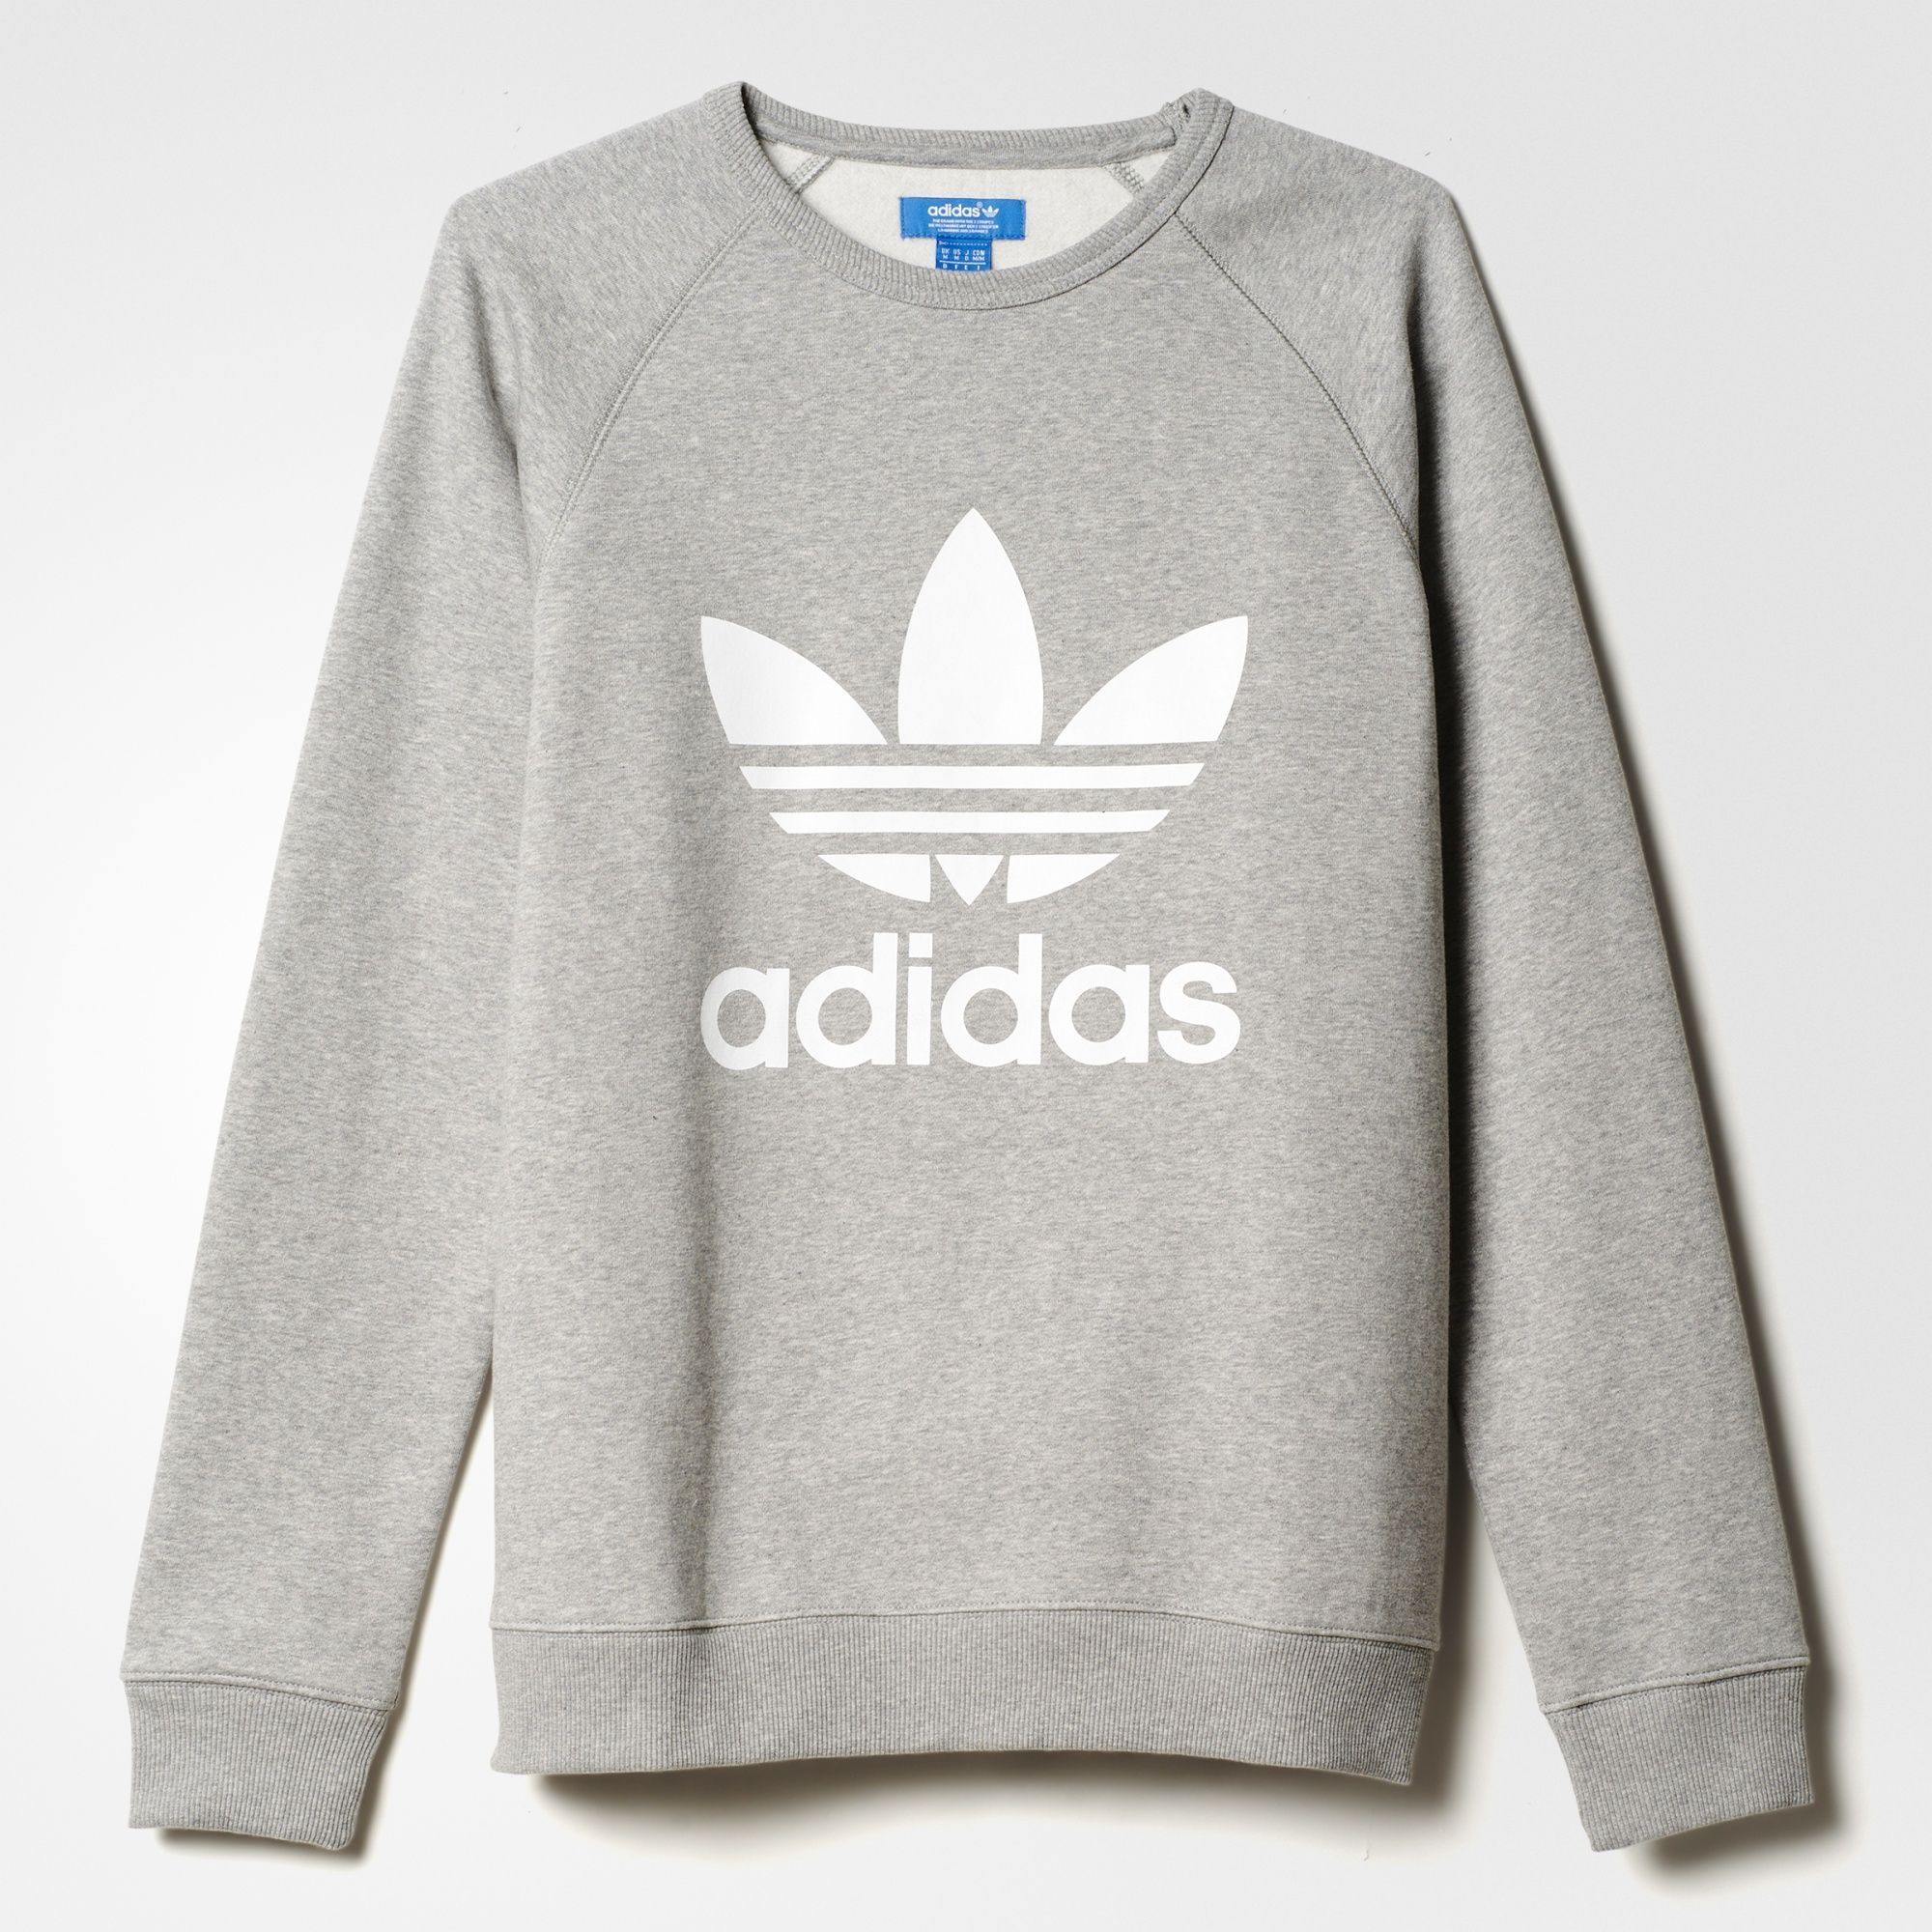 Begin every walk or workout in comfort and style with our range of adidas  men's sweatshirts and men's jumpers.